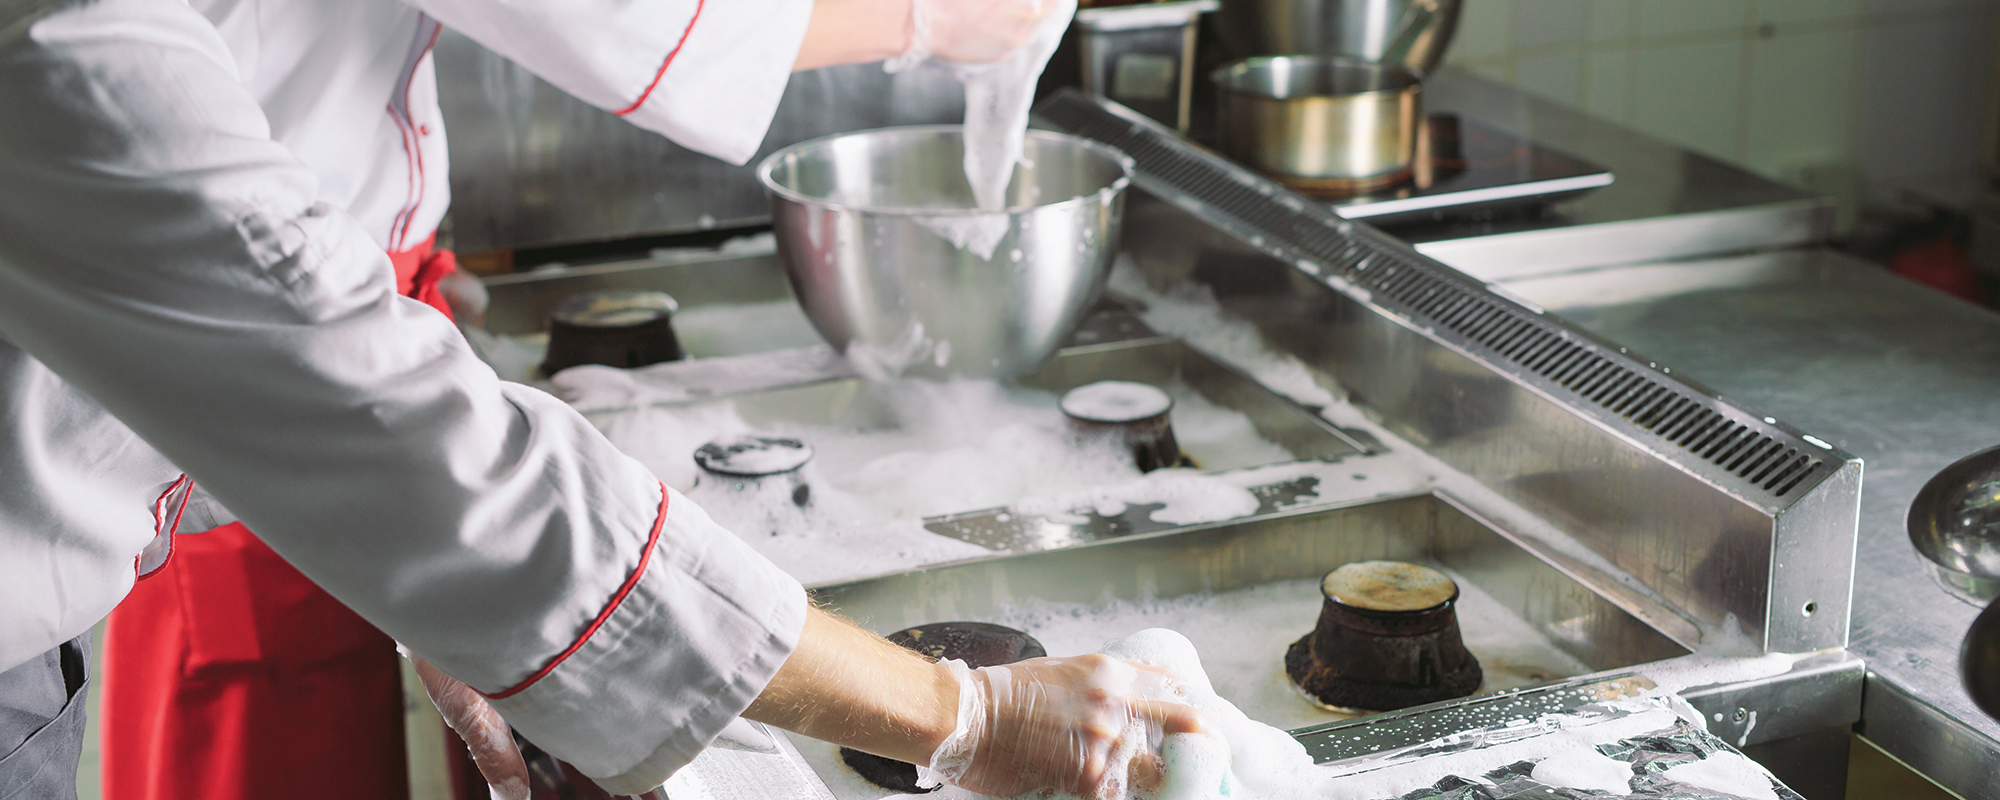 Keep Your Commercial Kitchen Clean & Safe